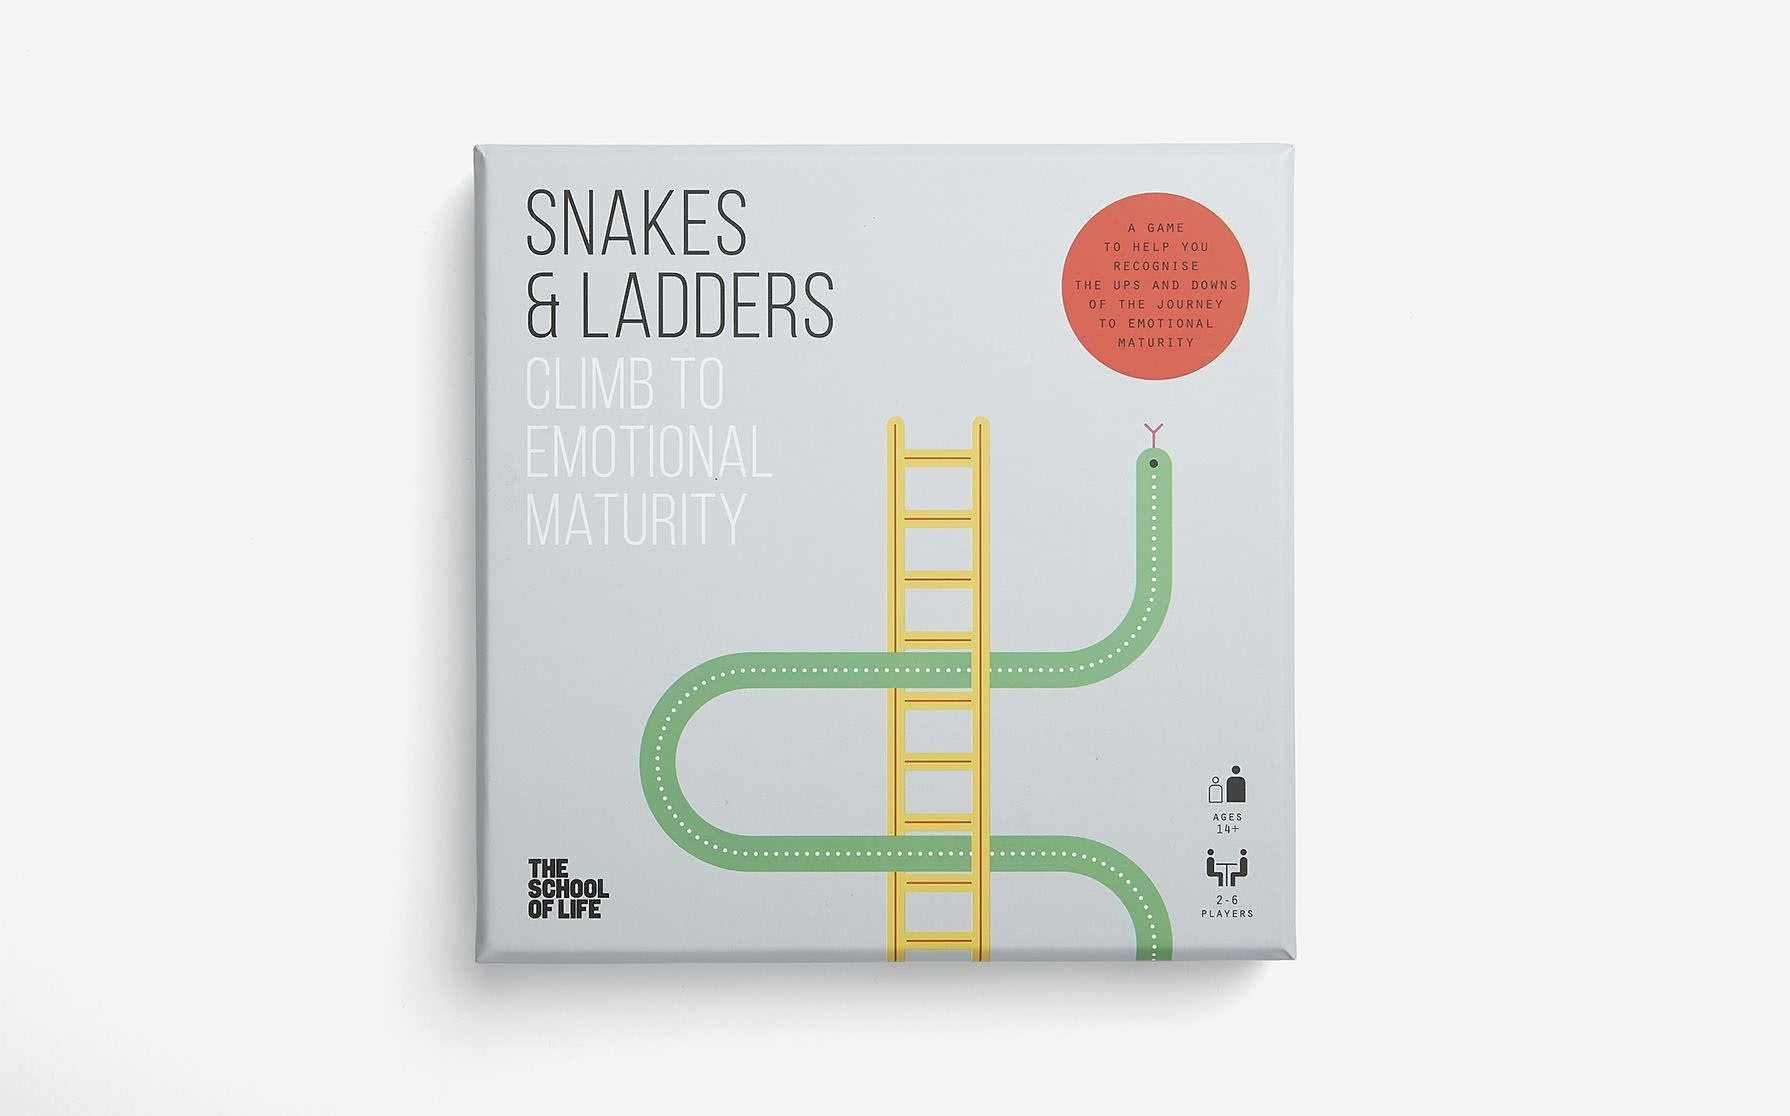 Board Game - Snakes & Ladders Emotional Maturity